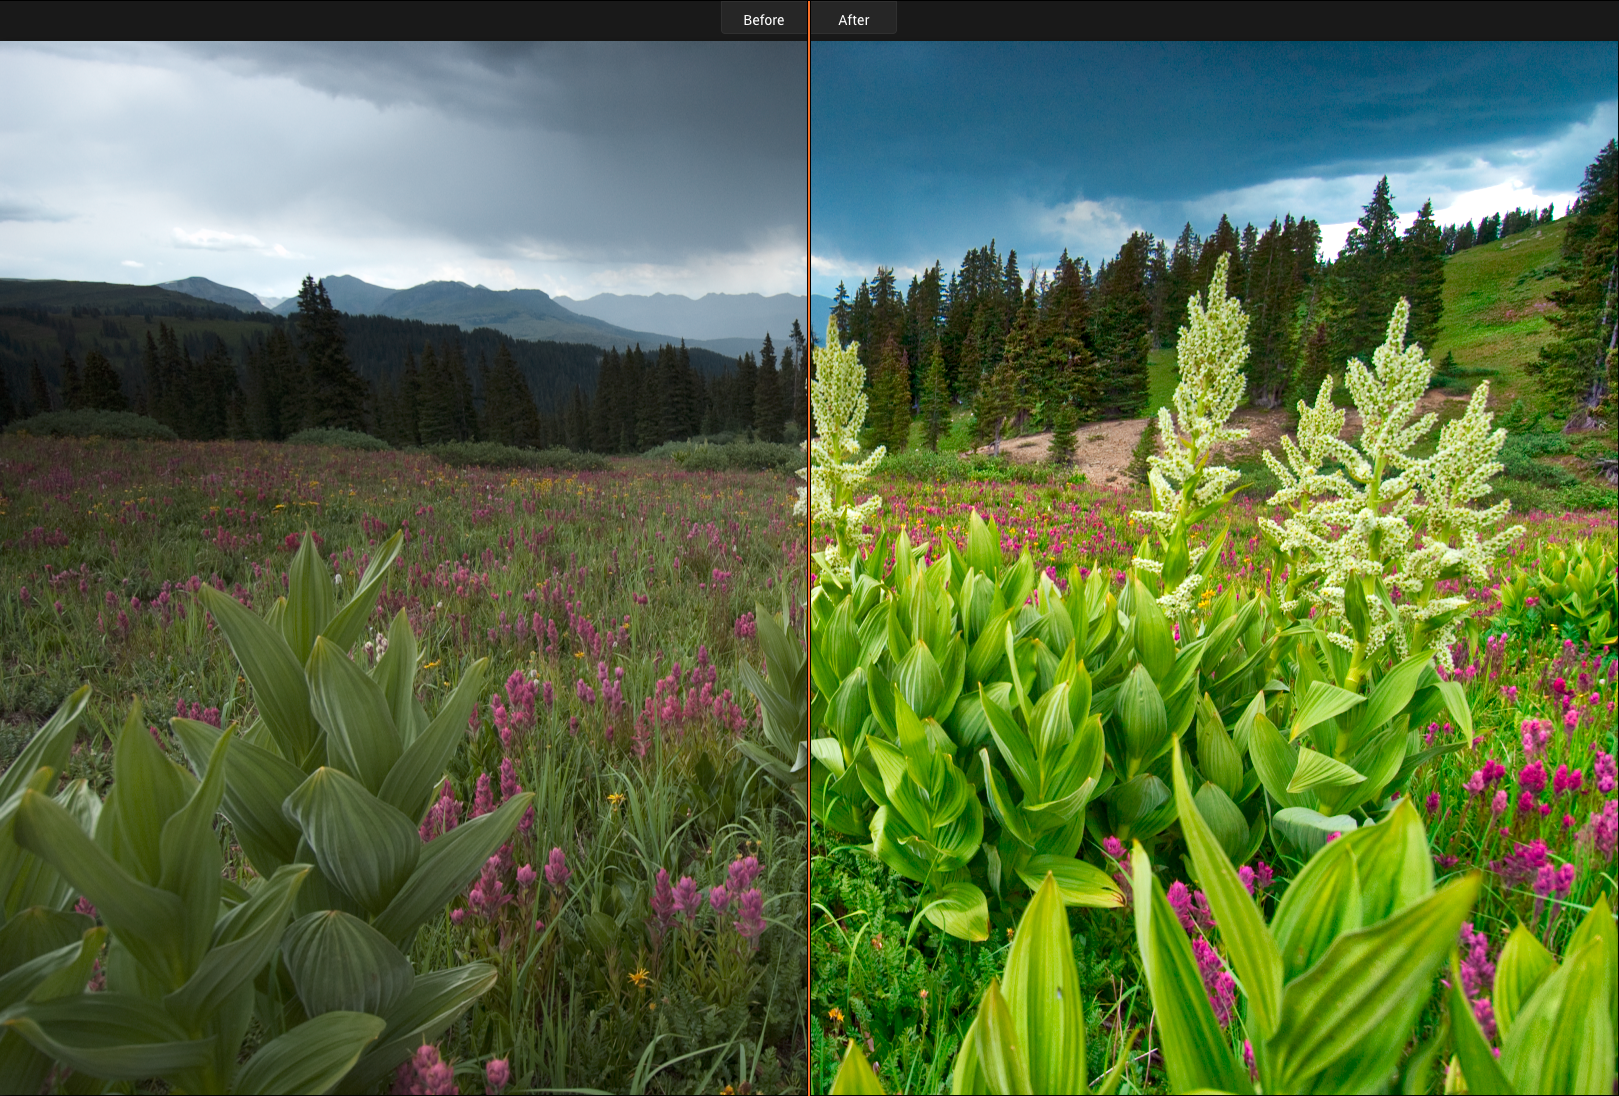 This shows the Before/After processing by Luminar.